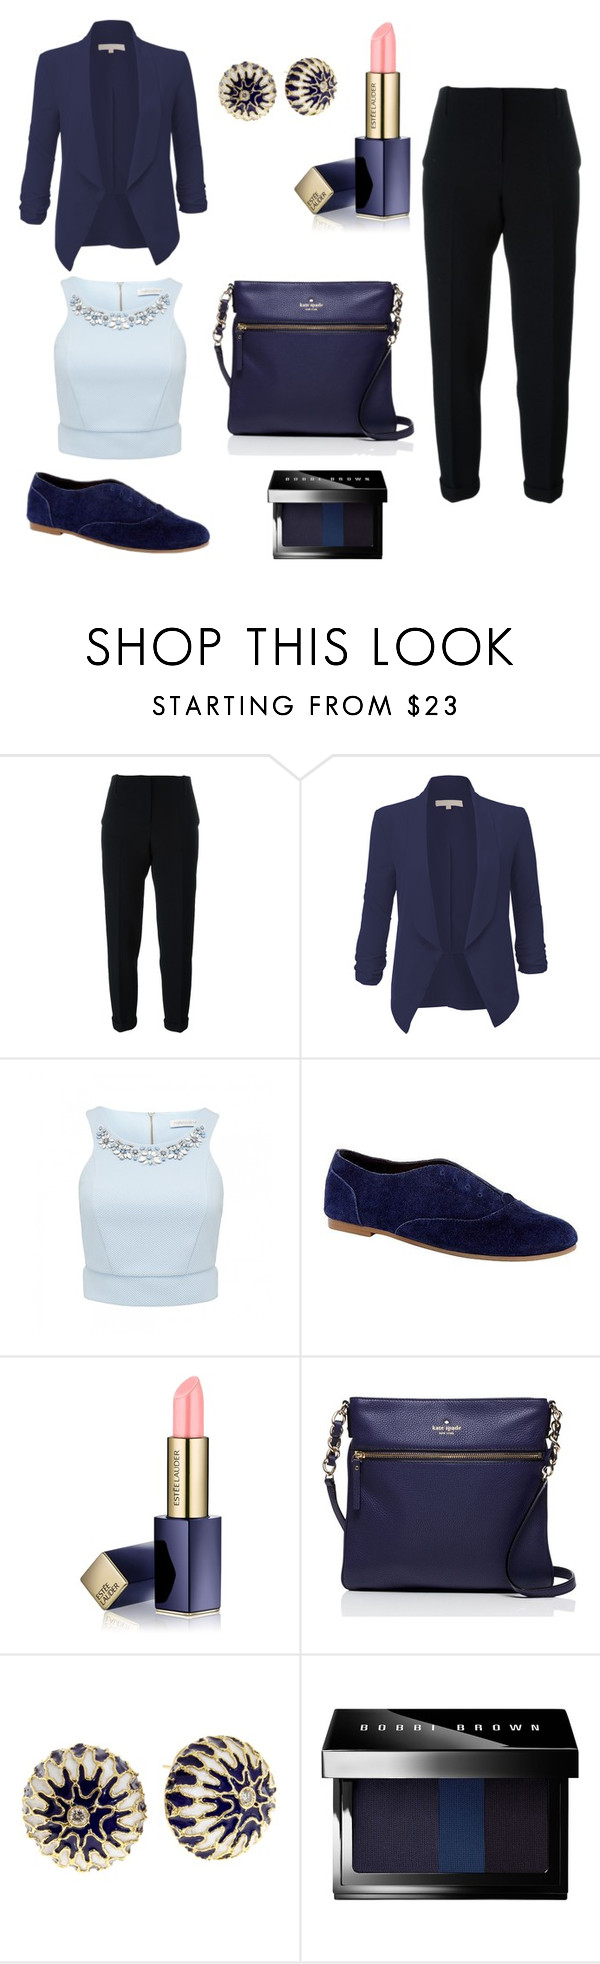 """Seattle"" by camille-triolo ❤ liked on Polyvore featuring Nanushka, LE3NO, Forever New, Sole Society, Estée Lauder, Kate Spade, Bobbi Brown Cosmetics, women's clothing, women's fashion and women"